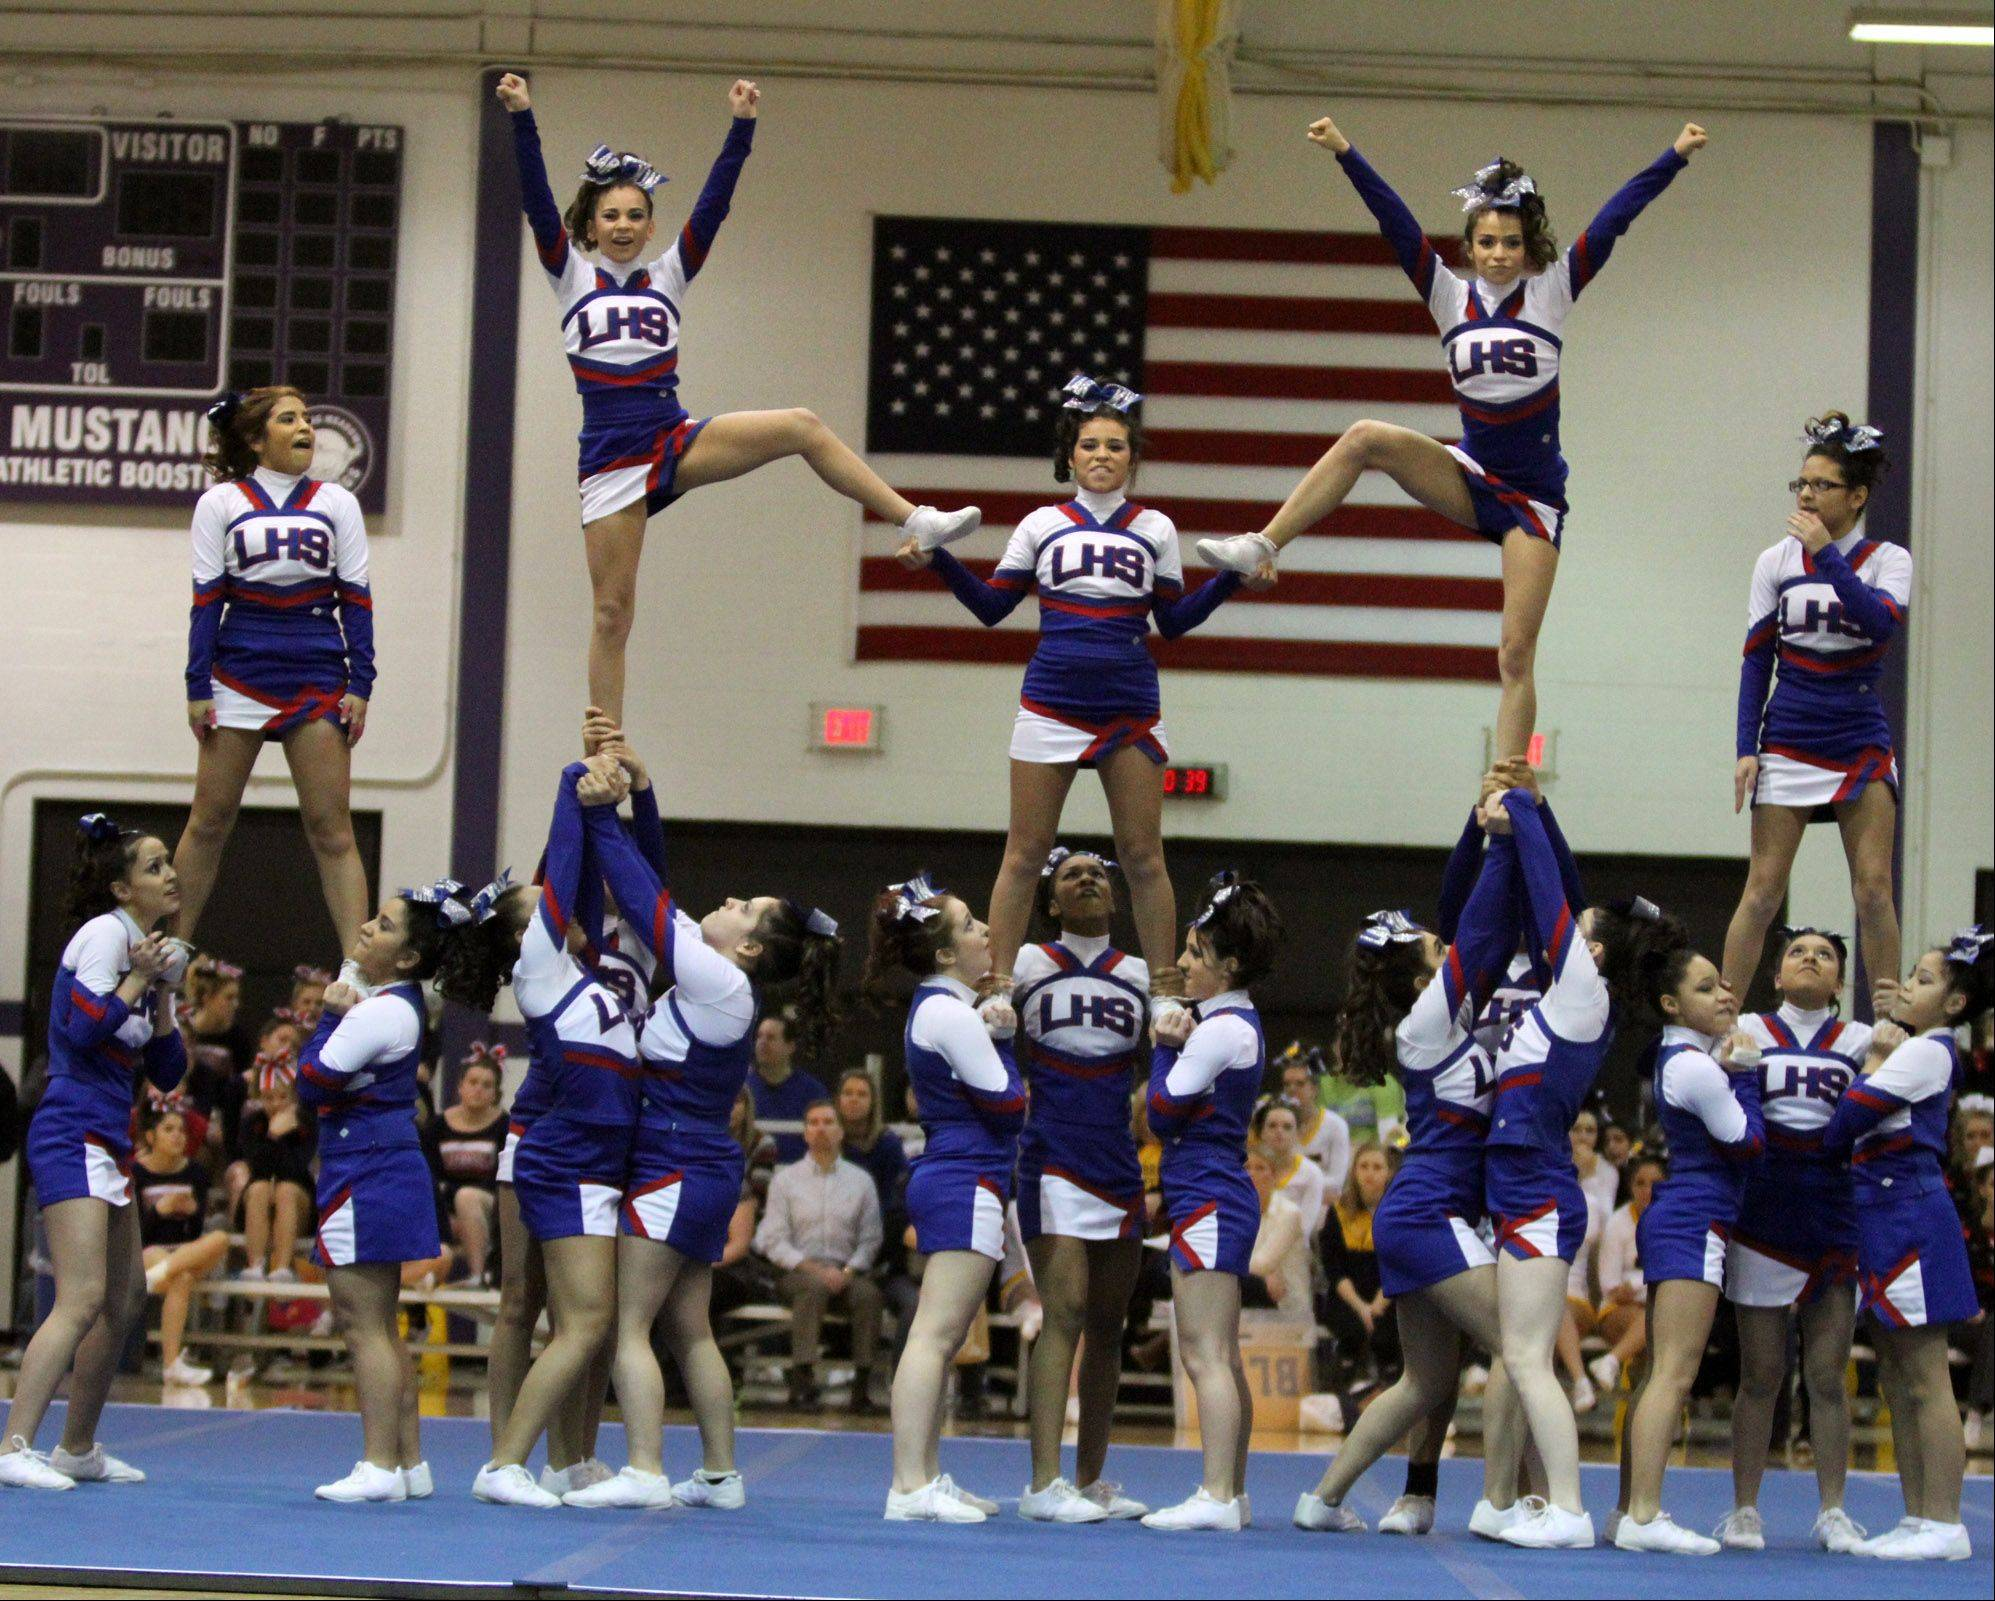 Larkin High School performs at the IHSA competitive cheerleading sectionals in Rolling Meadows on Saturday.